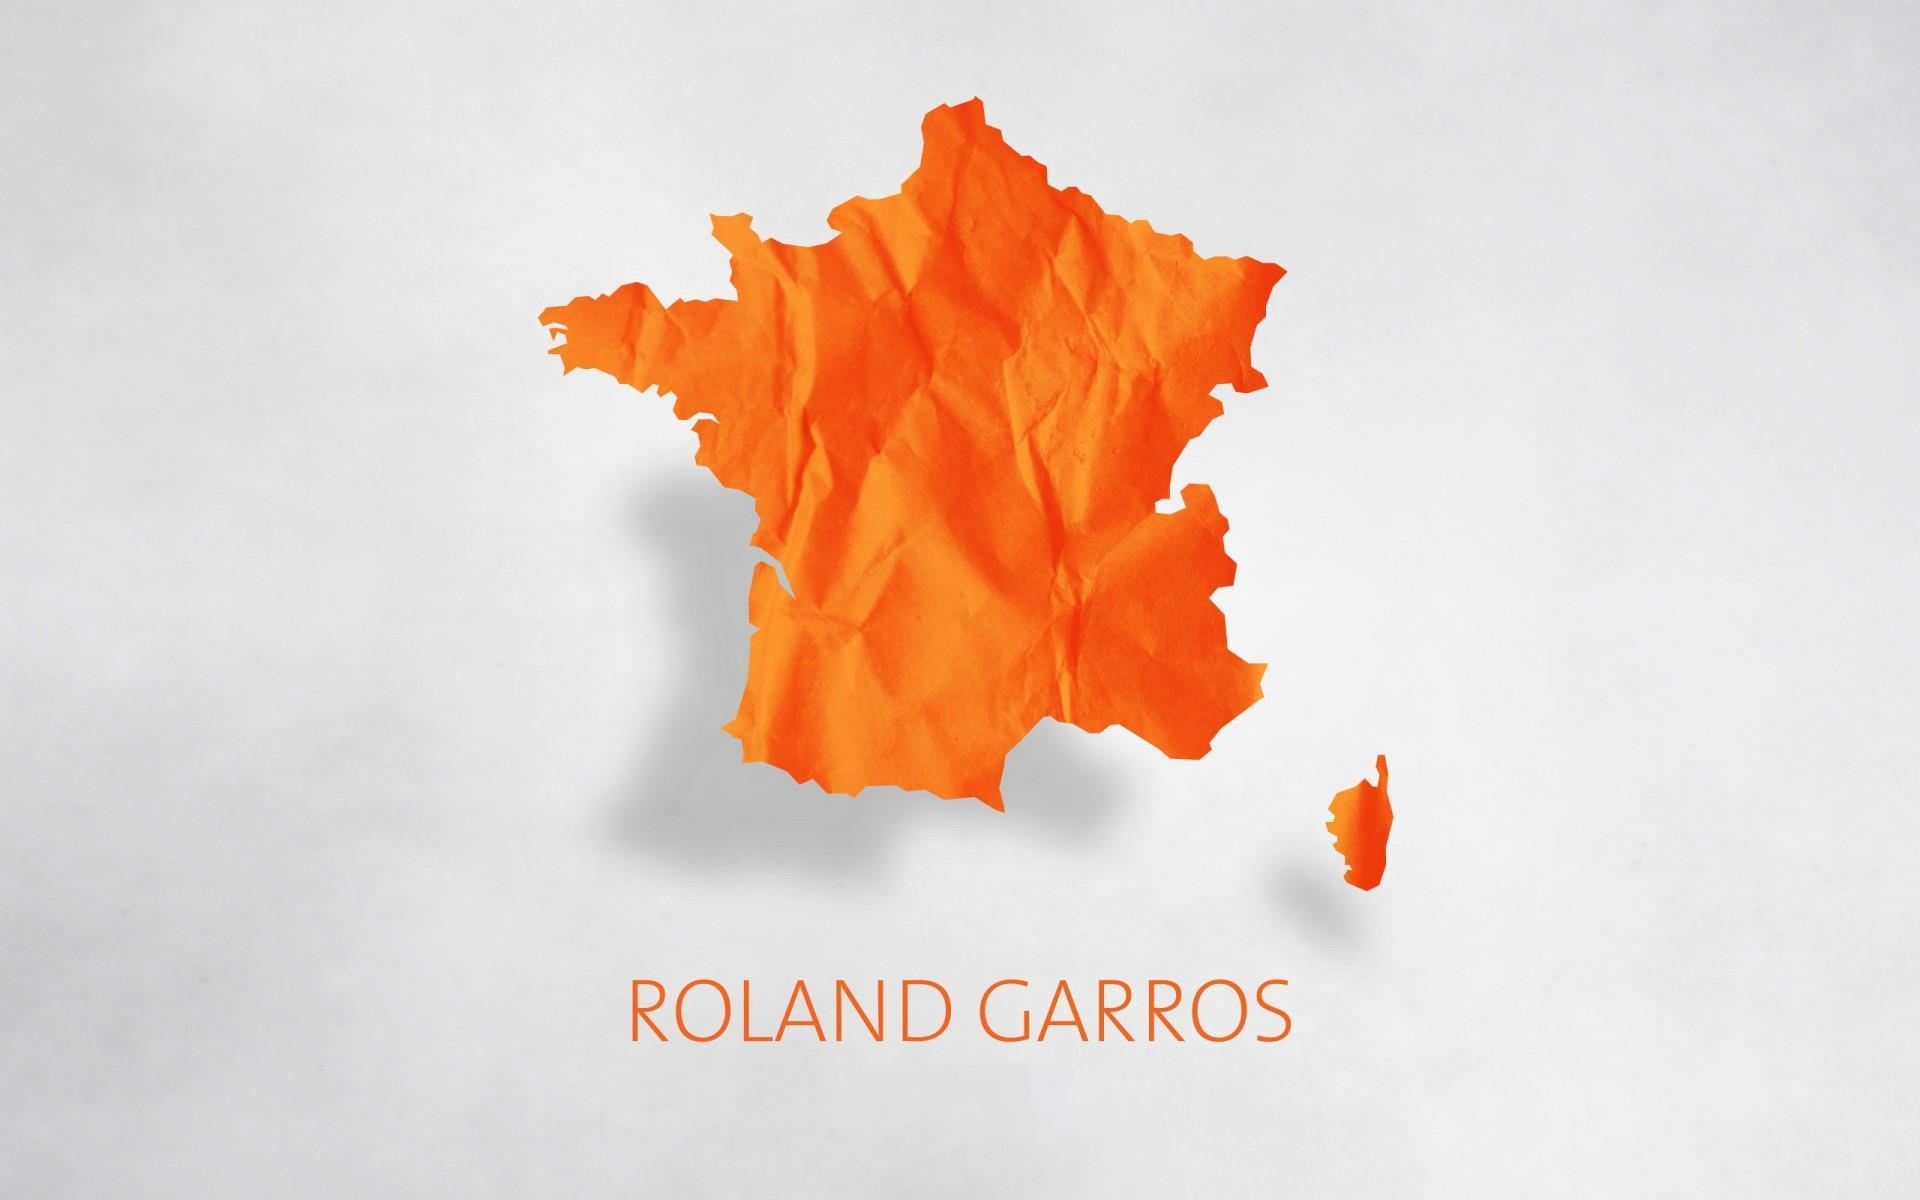 roland-garros-france-map-wallpaper_fond-ecran